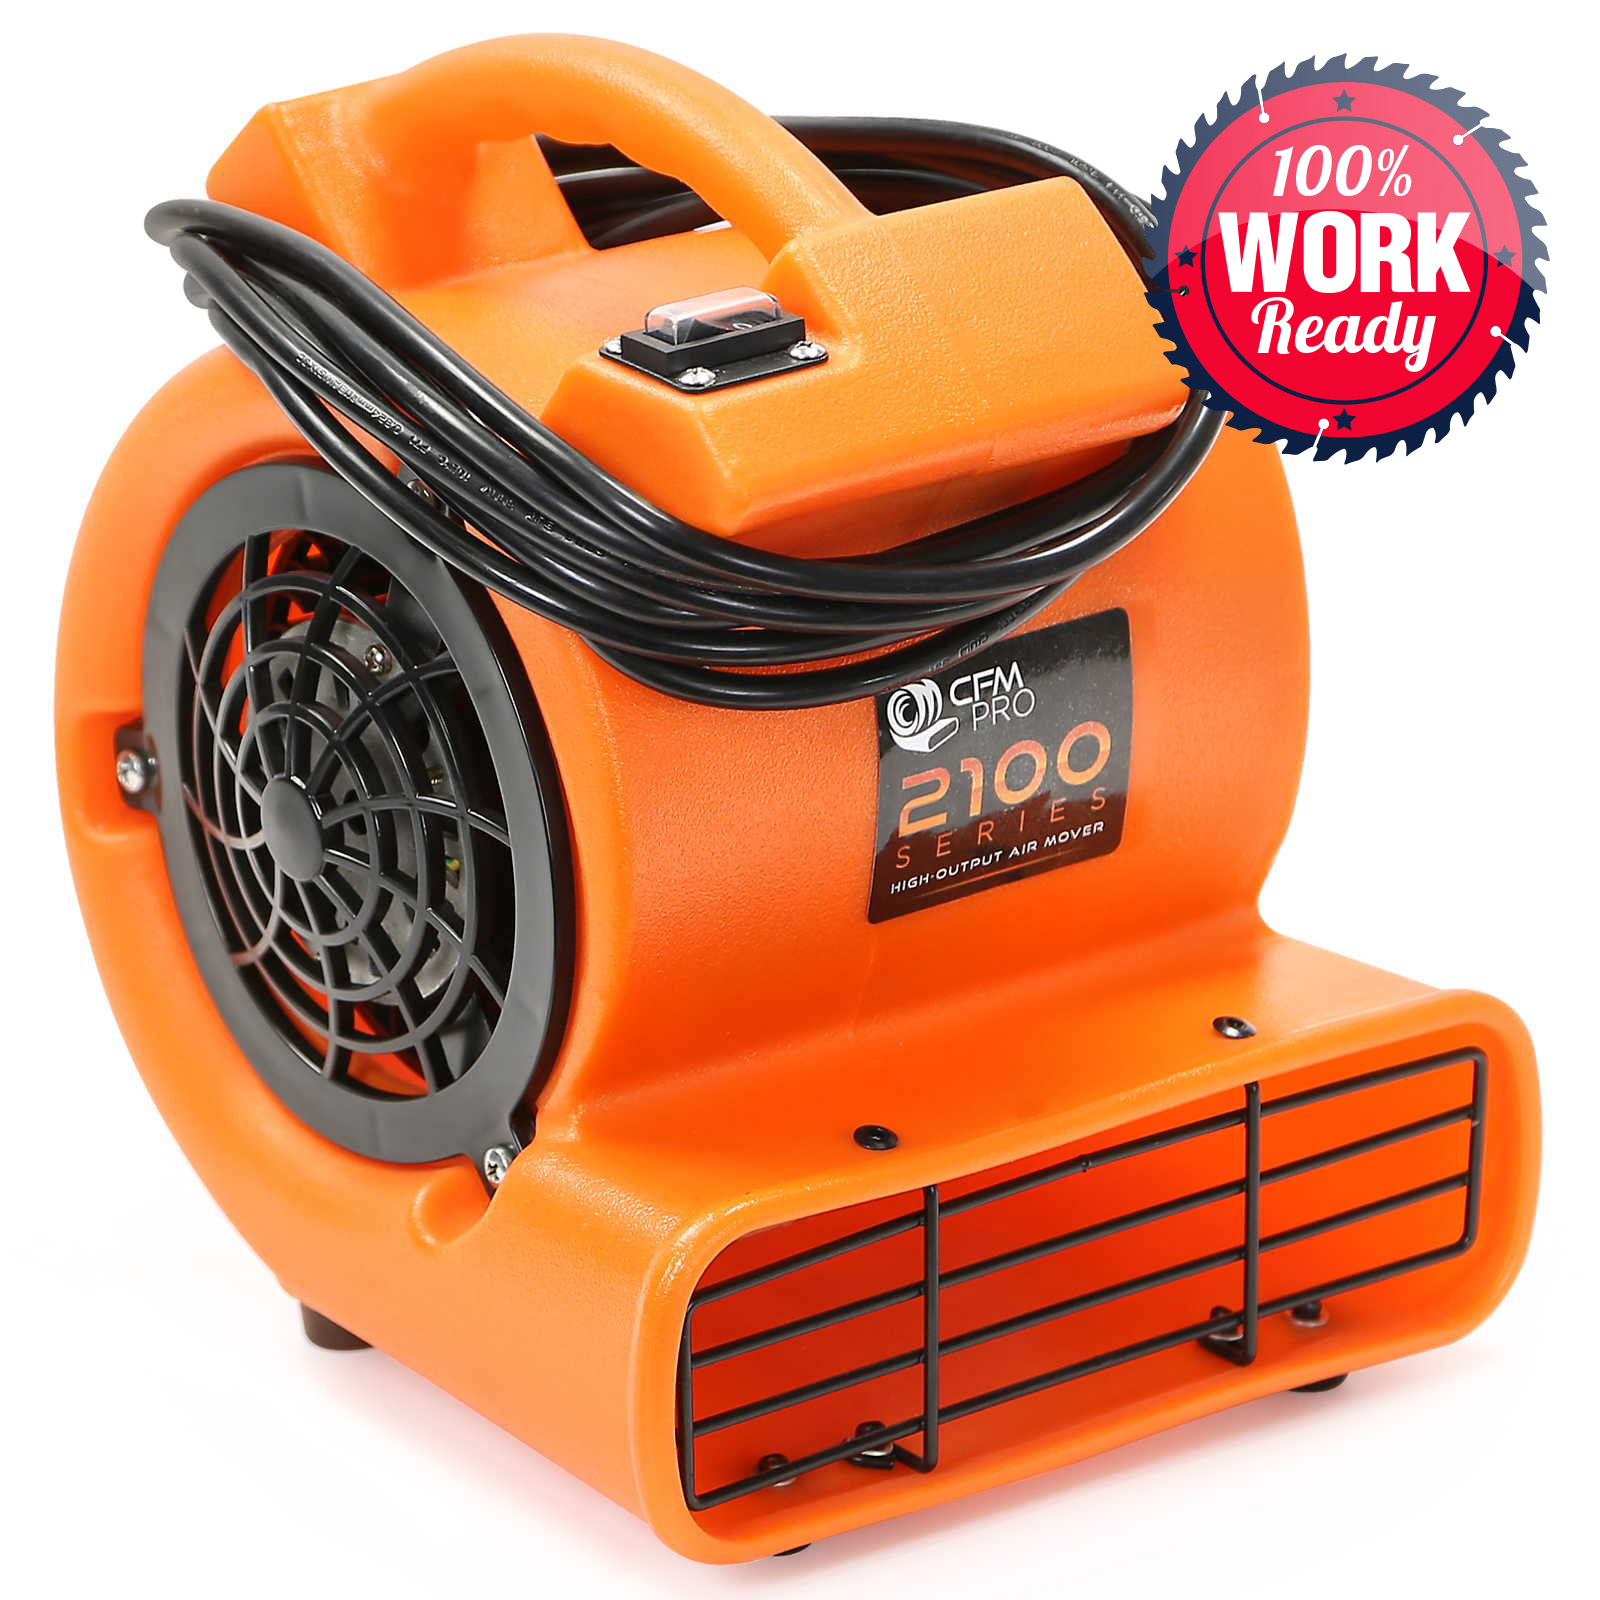 Small Industrial Fans And Blowers : Air mover blower carpet dryer floor drying industrial fan